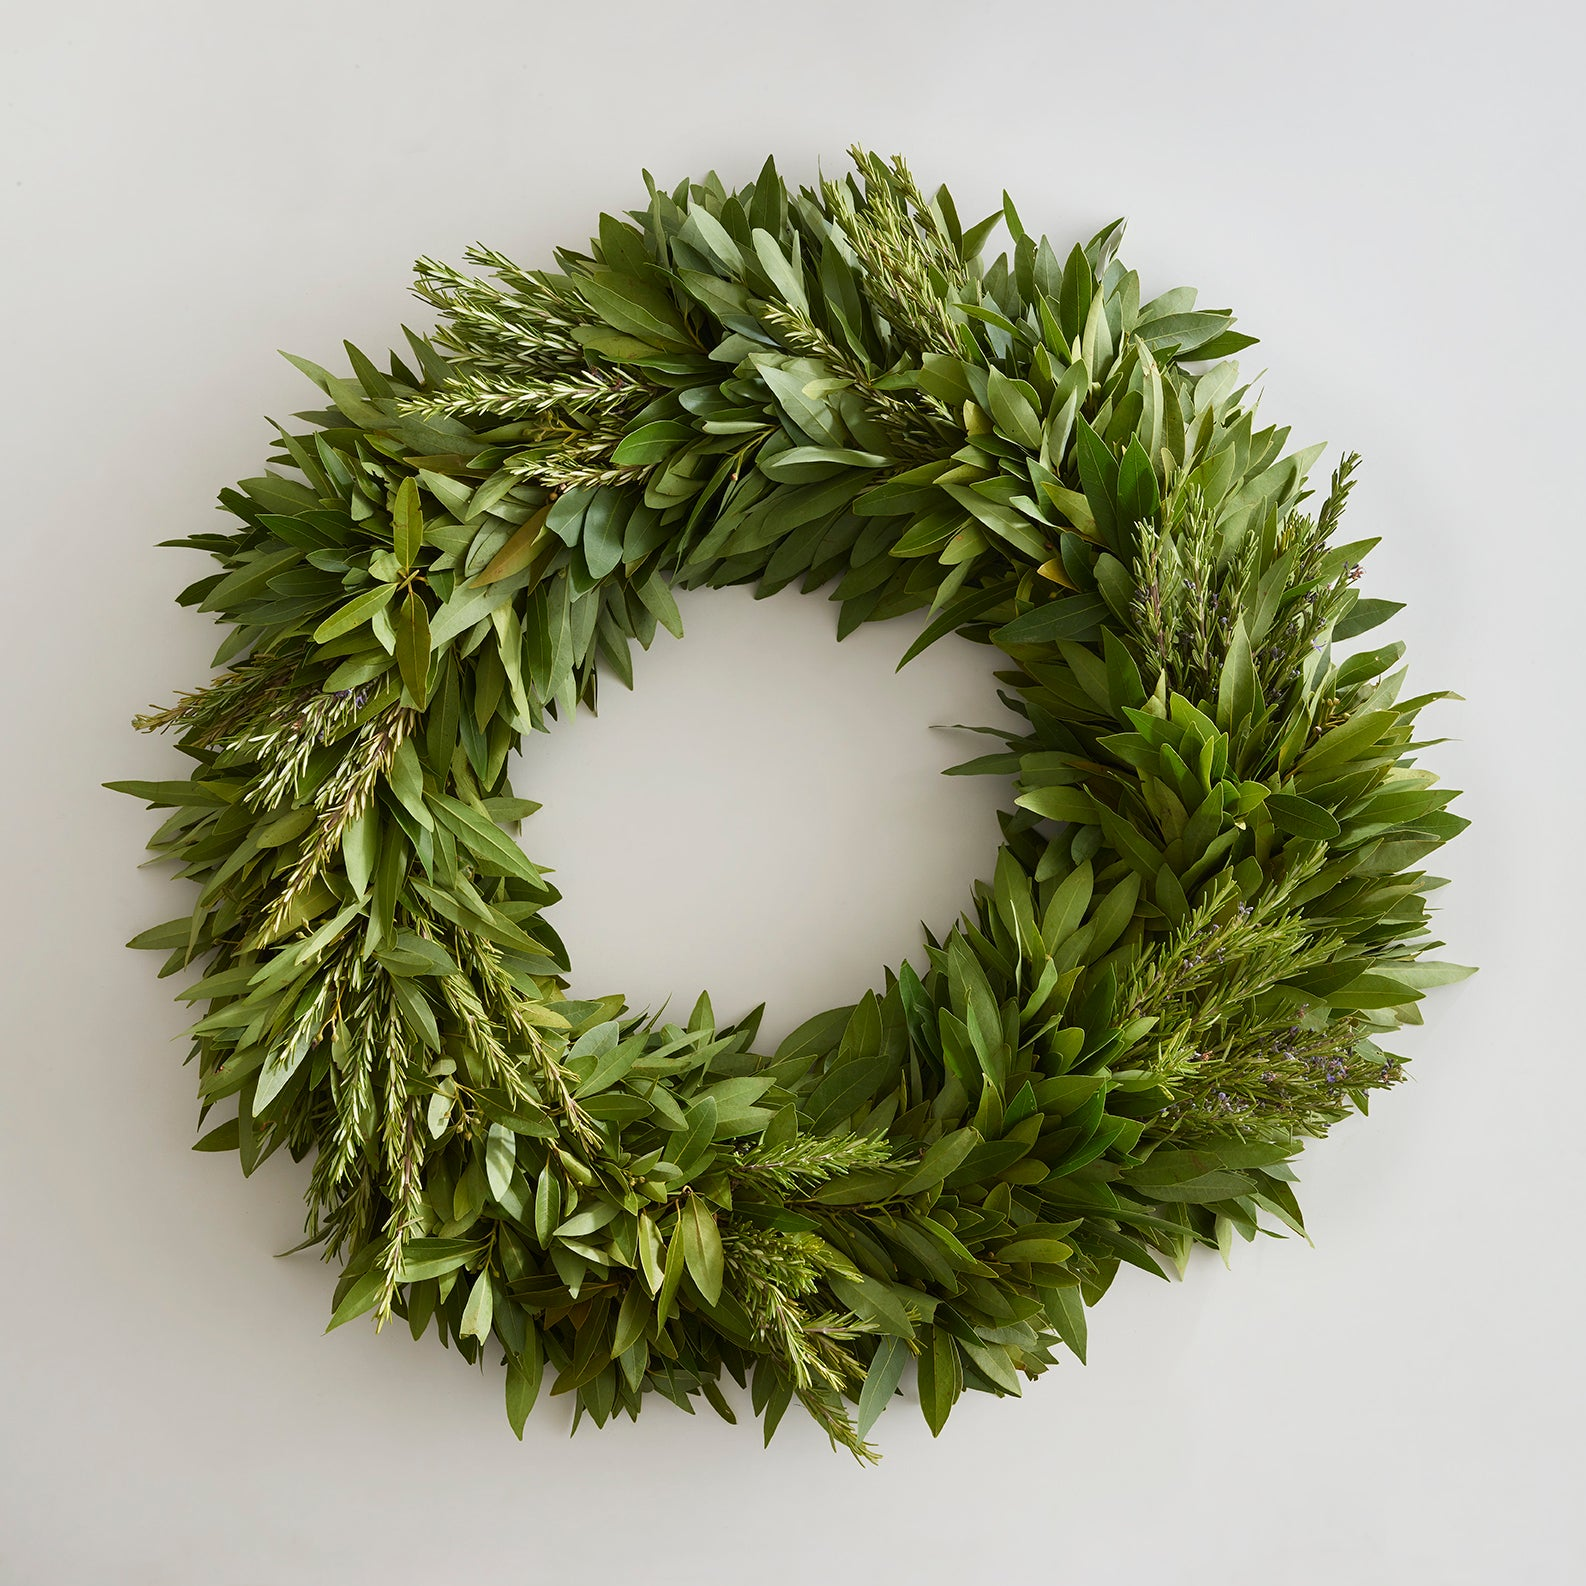 Bay Leaf Wreath with Rosemary